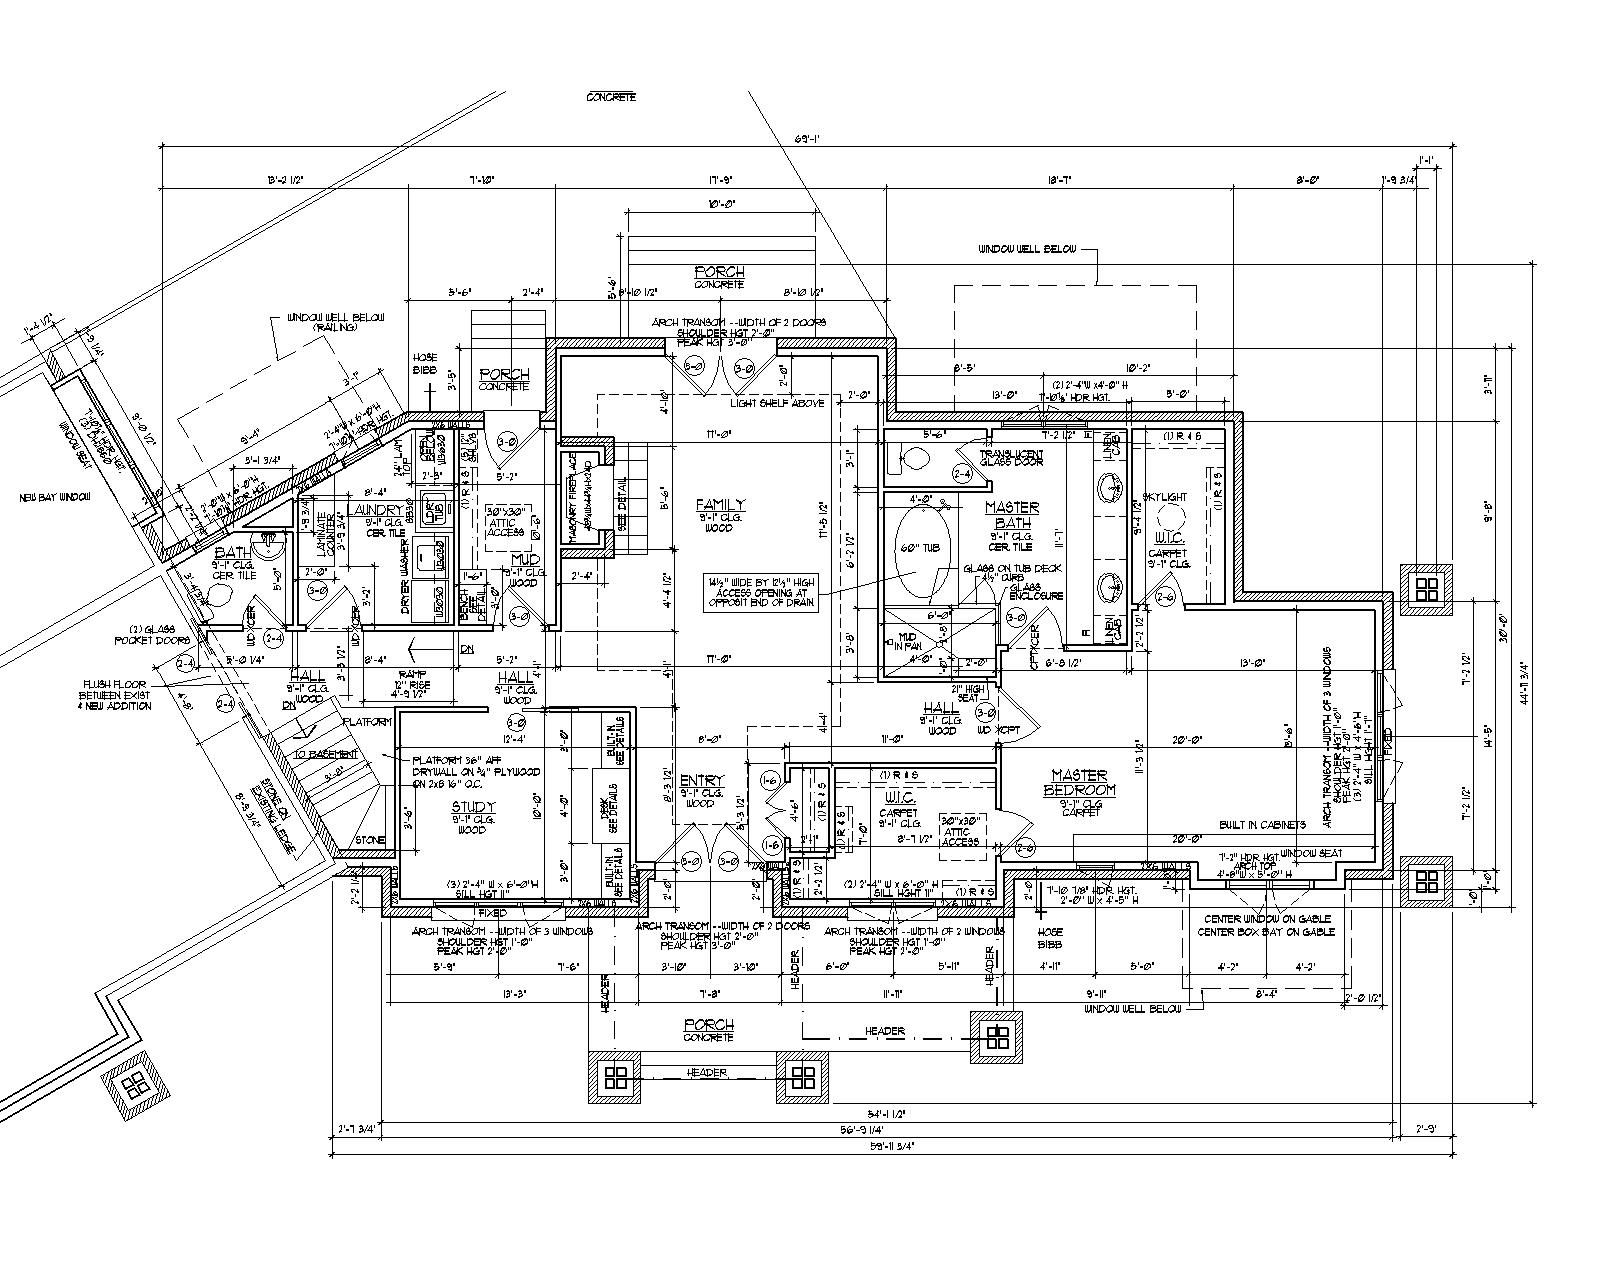 AutoCAD Drawings Draw CAD House Floor Plans Drafting and